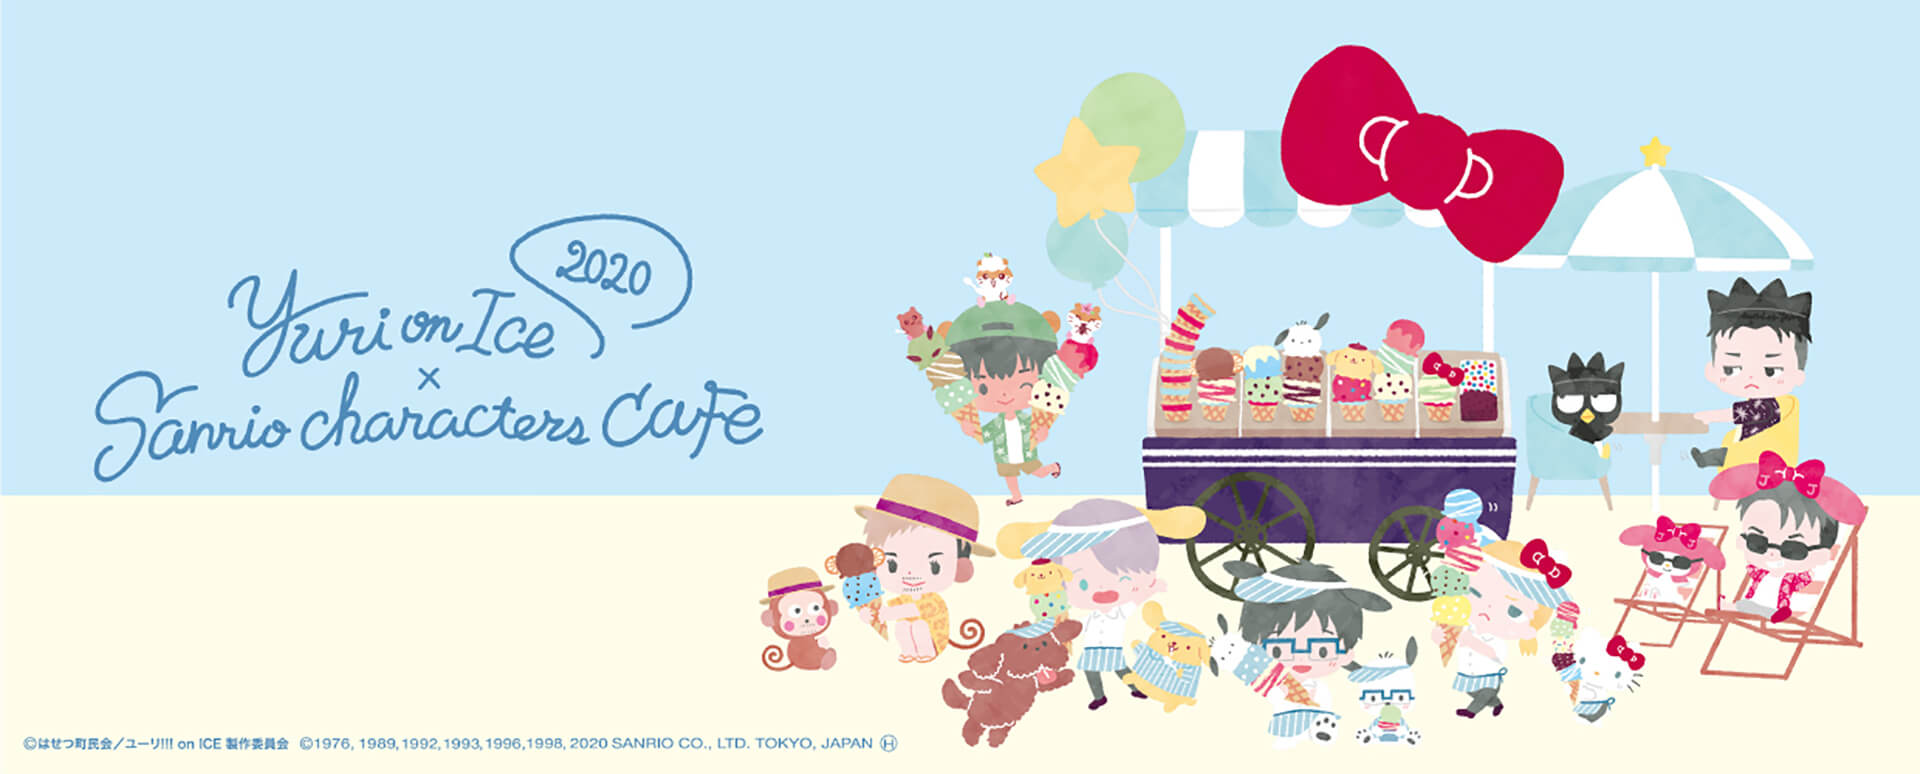 Yuri on Ice×Sanrio characters Cafe 2020